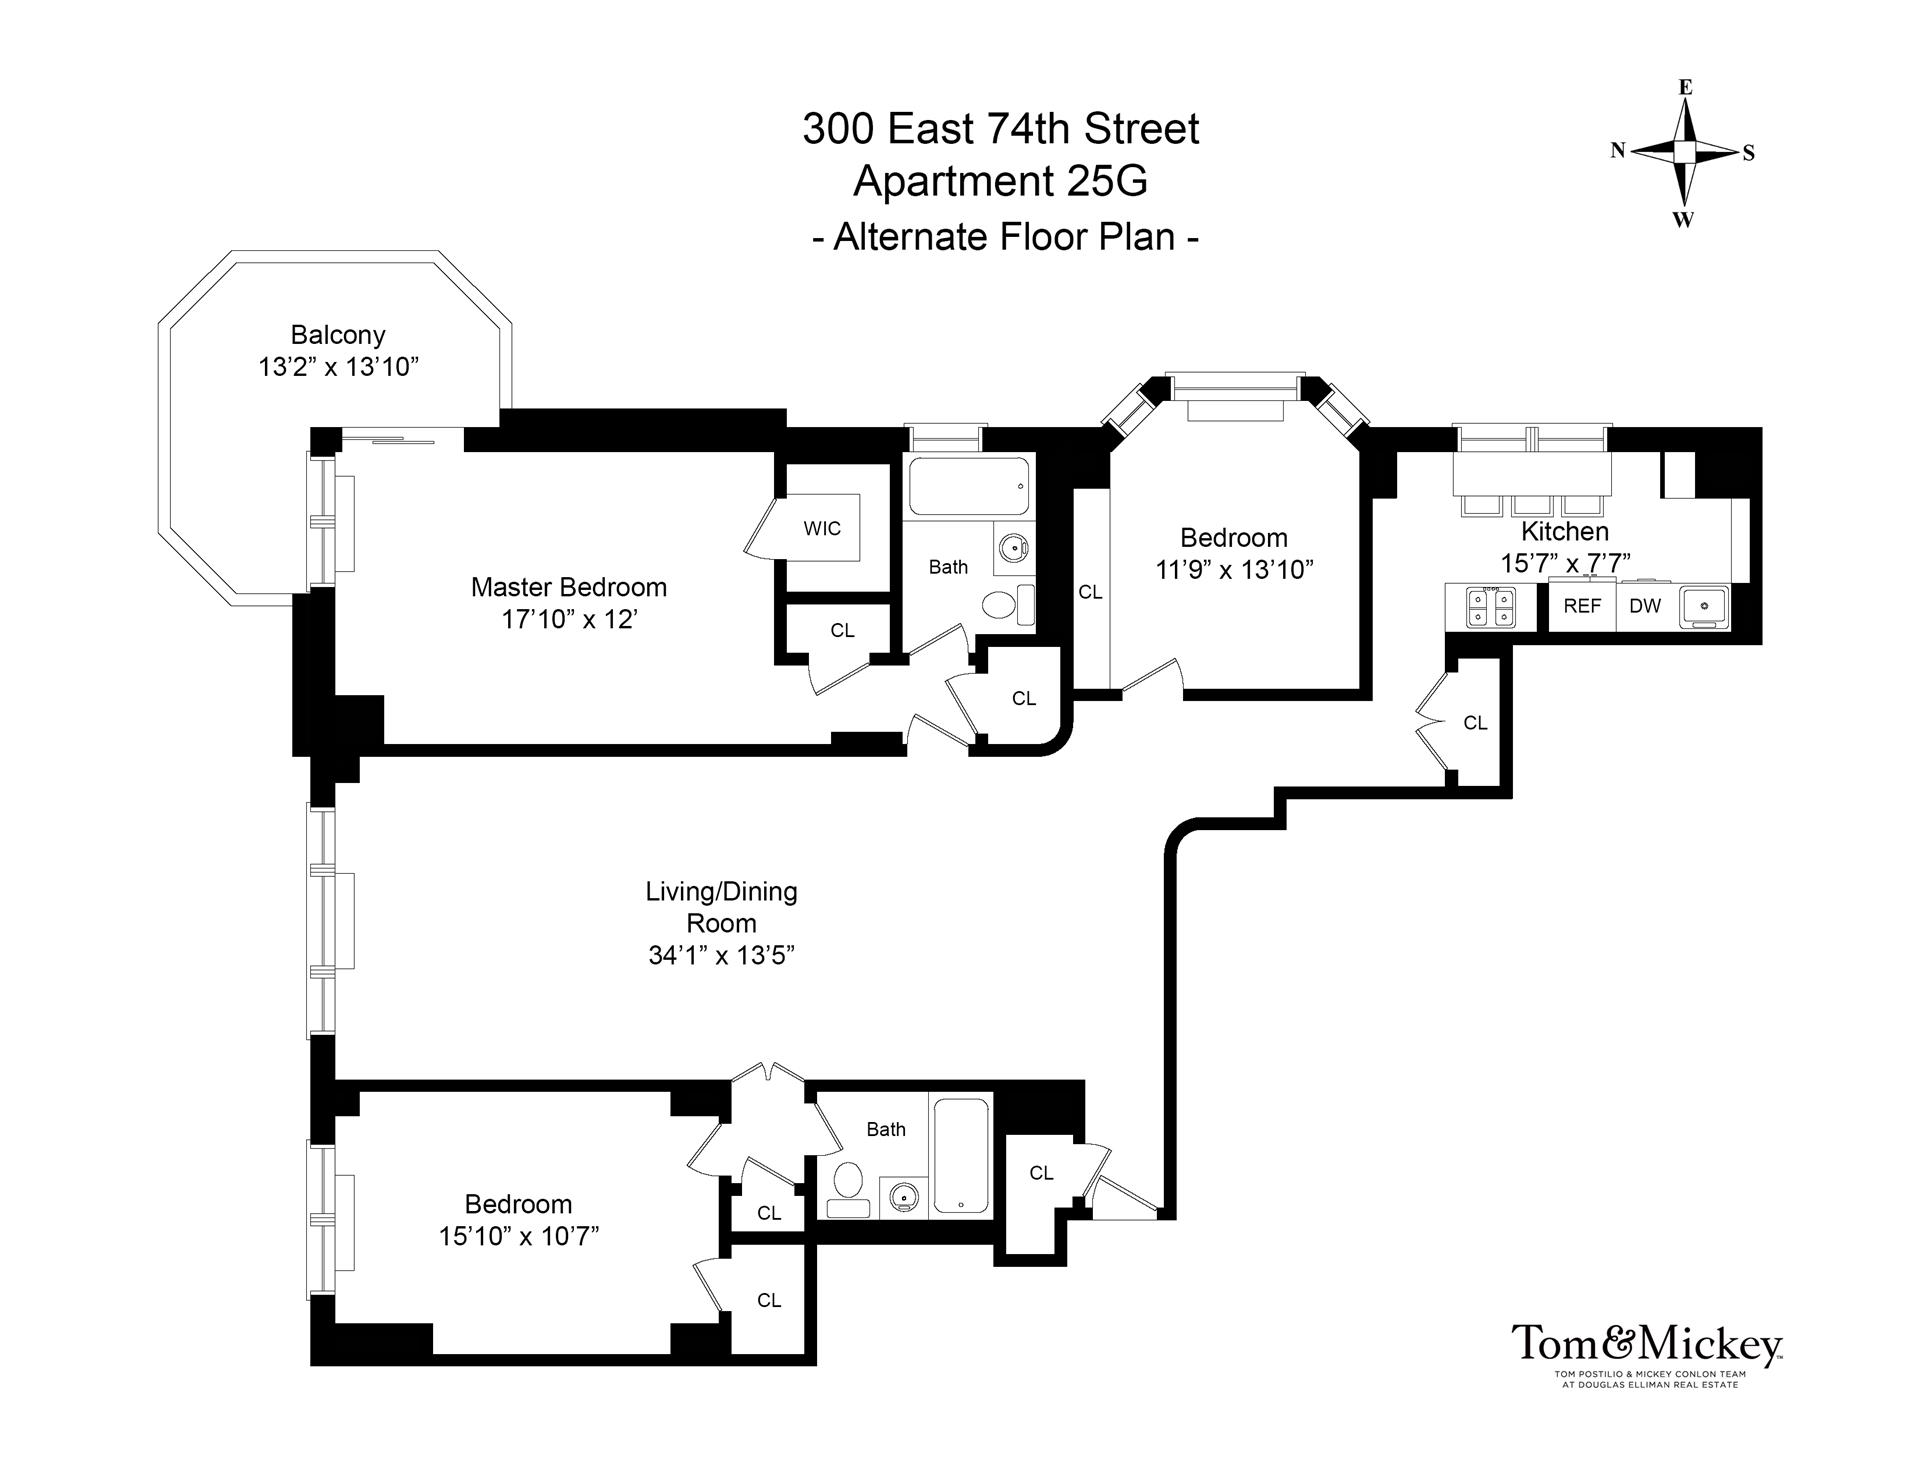 Floor plan of 300 East 74 St Owners Corp., 300 East 74th St, 25G - Upper East Side, New York